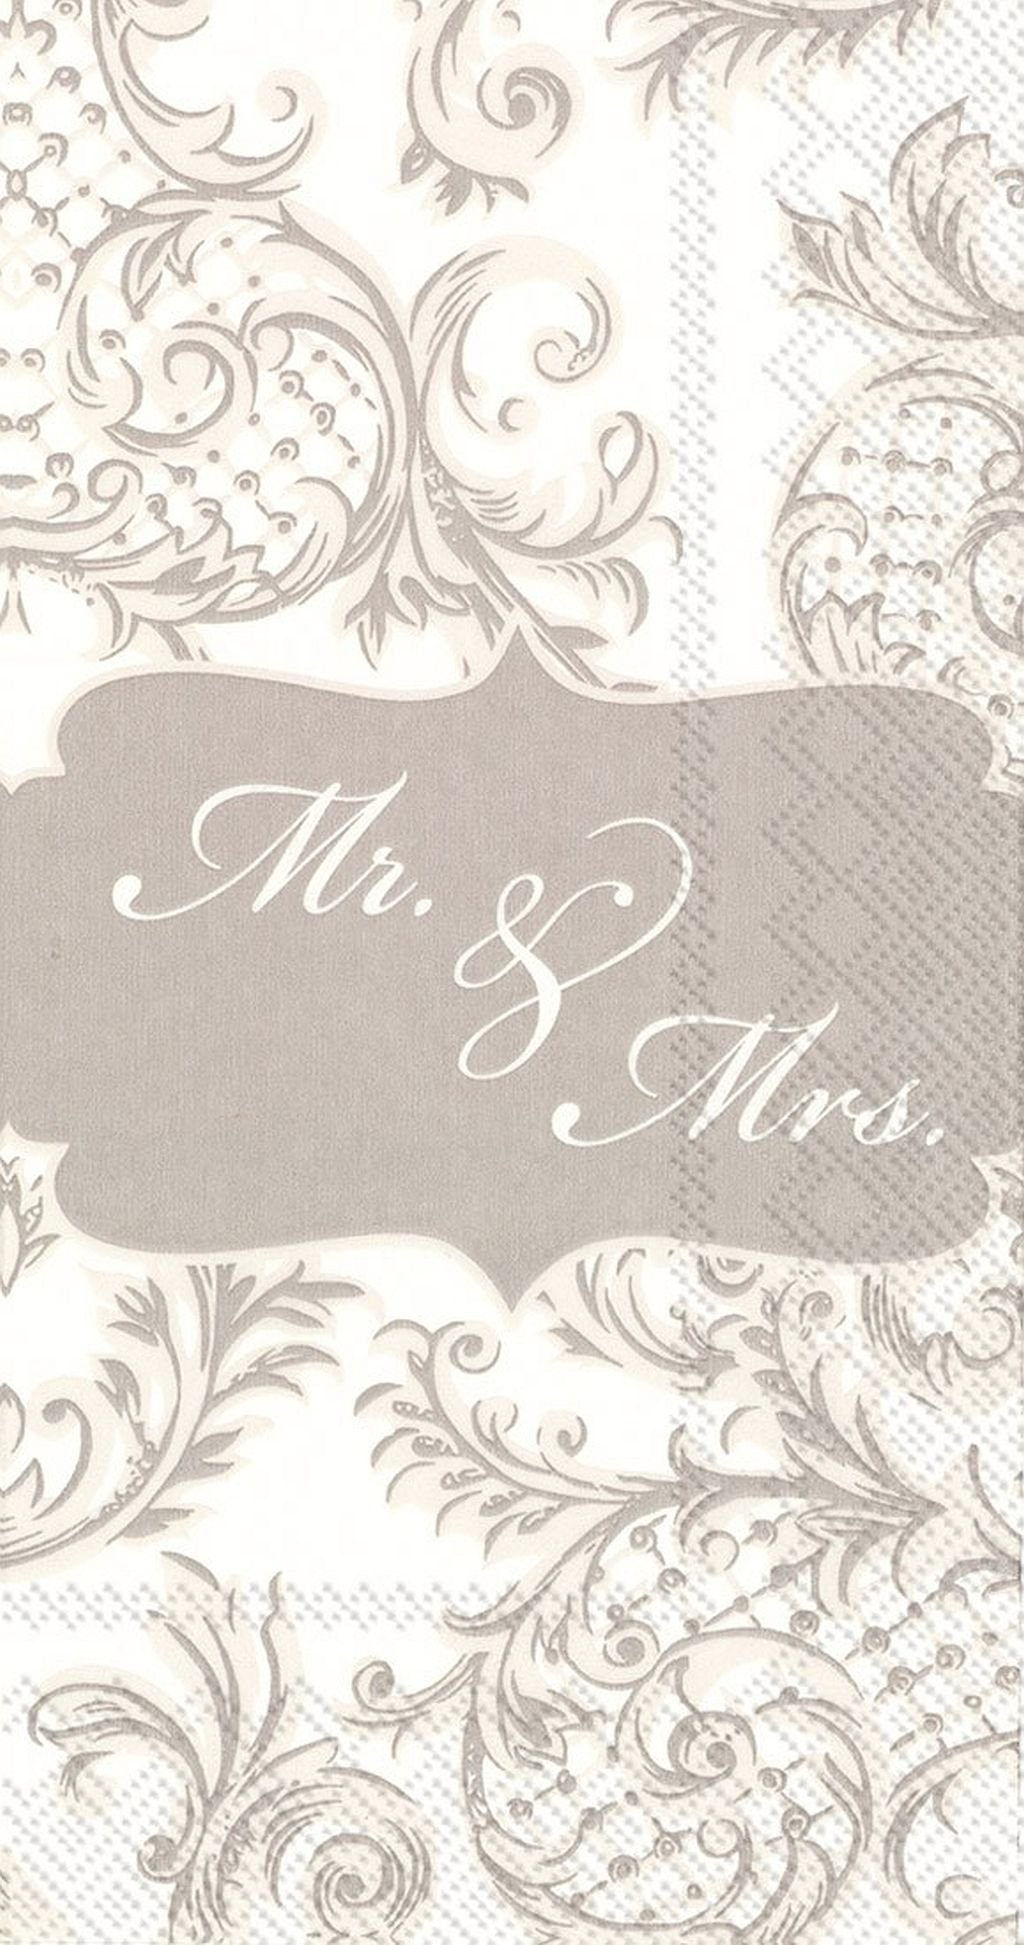 Ideal Home Range 16 Count Paper Guest Towel Napkins, Mr & Mrs Wedding